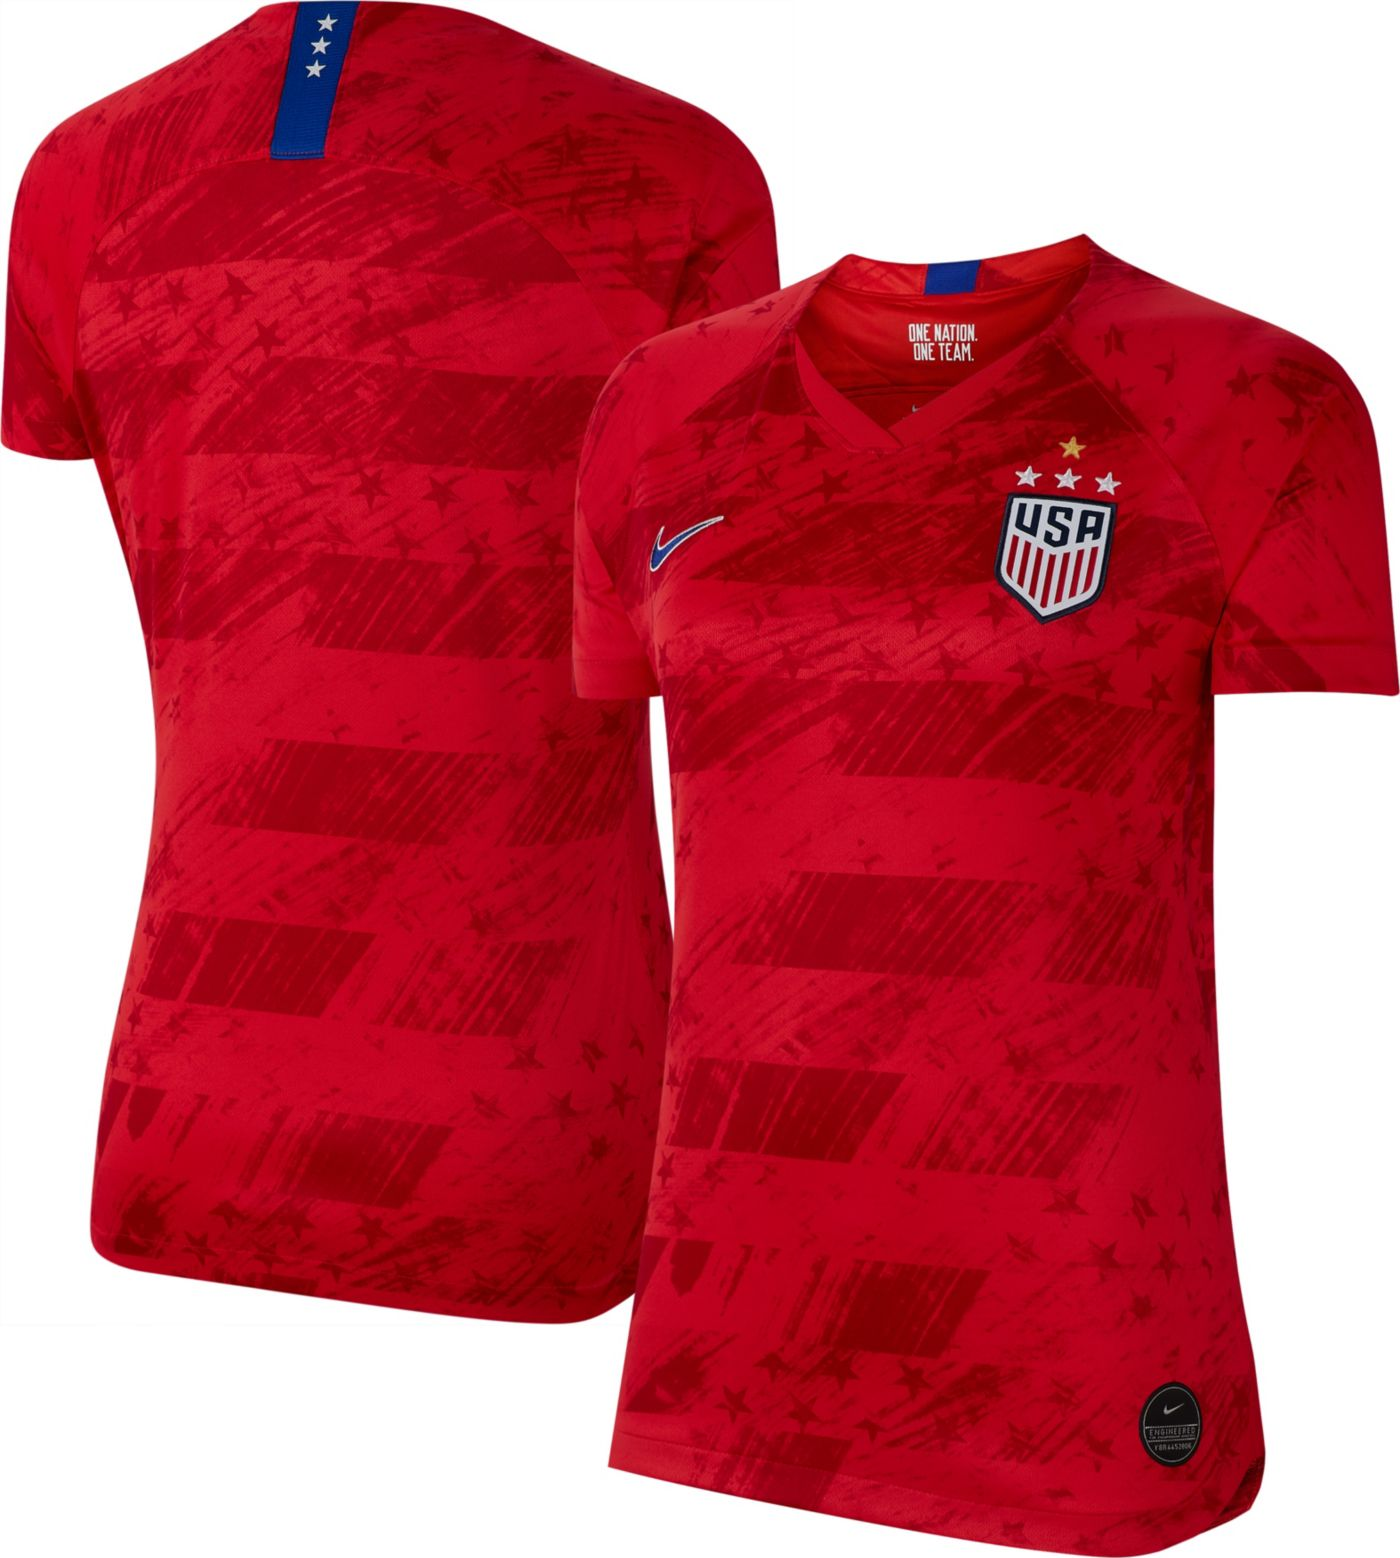 Nike Women's 2019 FIFA Women's World Cup USA Soccer 4-Star Breathe Stadium Away Replica Jersey